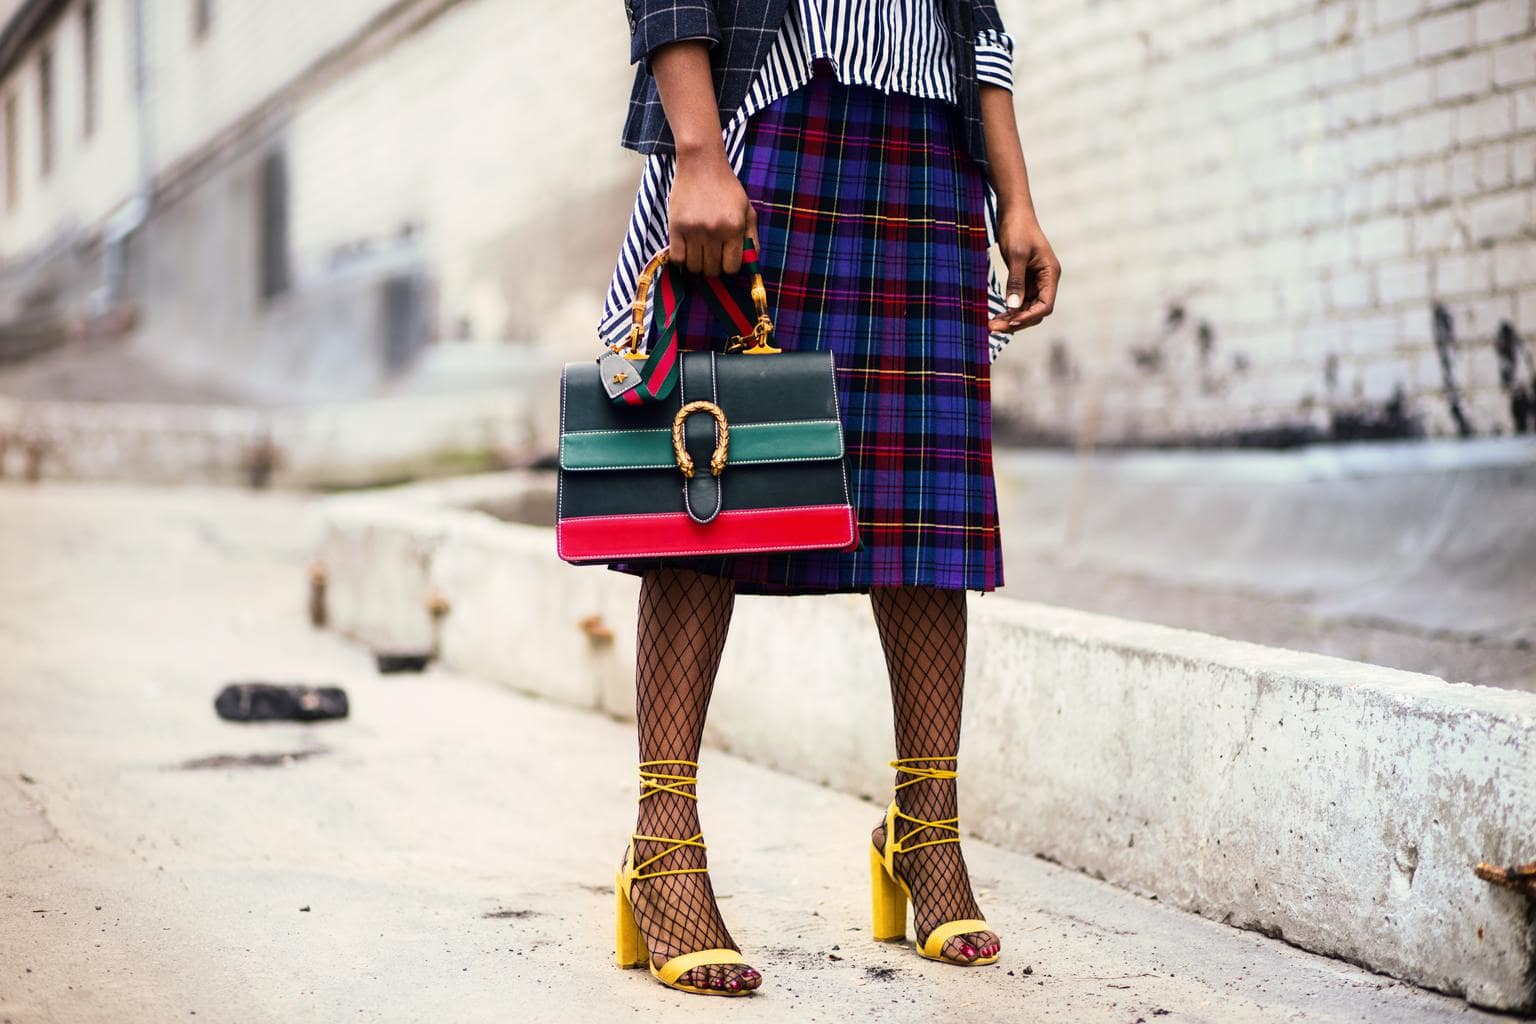 Internship style: Girl wearing a long skirt, heels, and a colorful bag